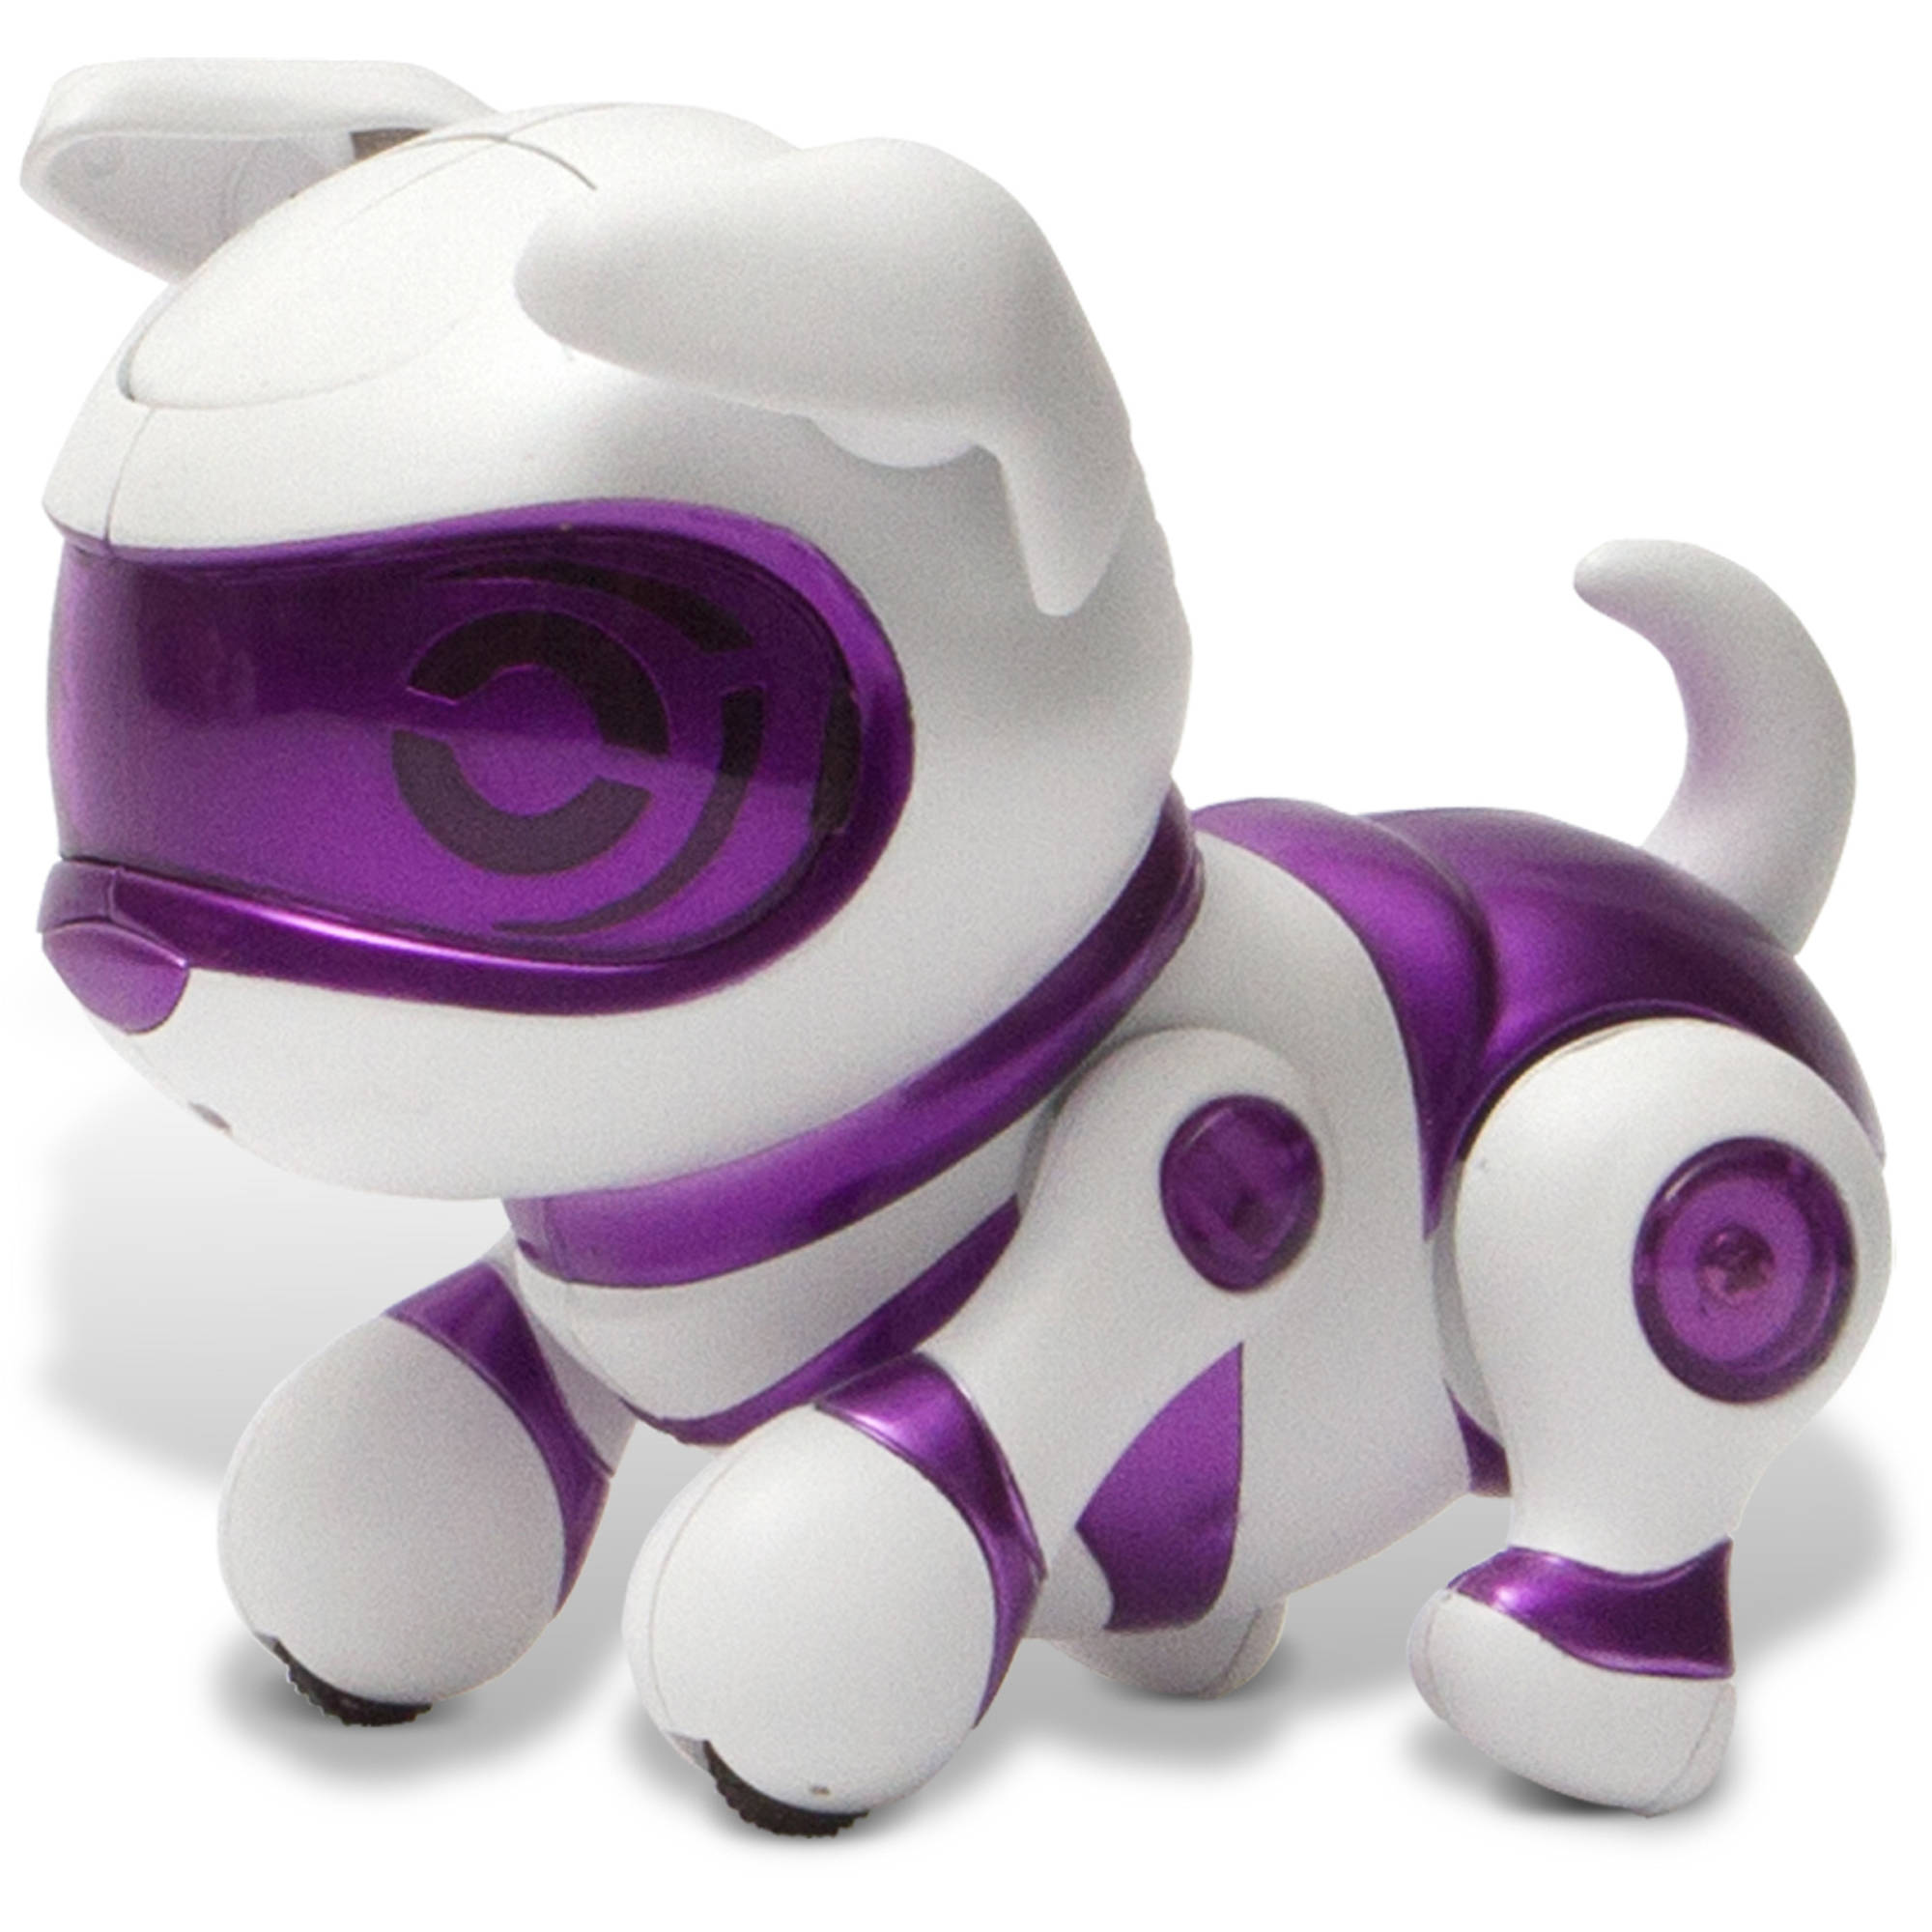 Tekno Robotic Pets Newborn Puppy Purple Walmart